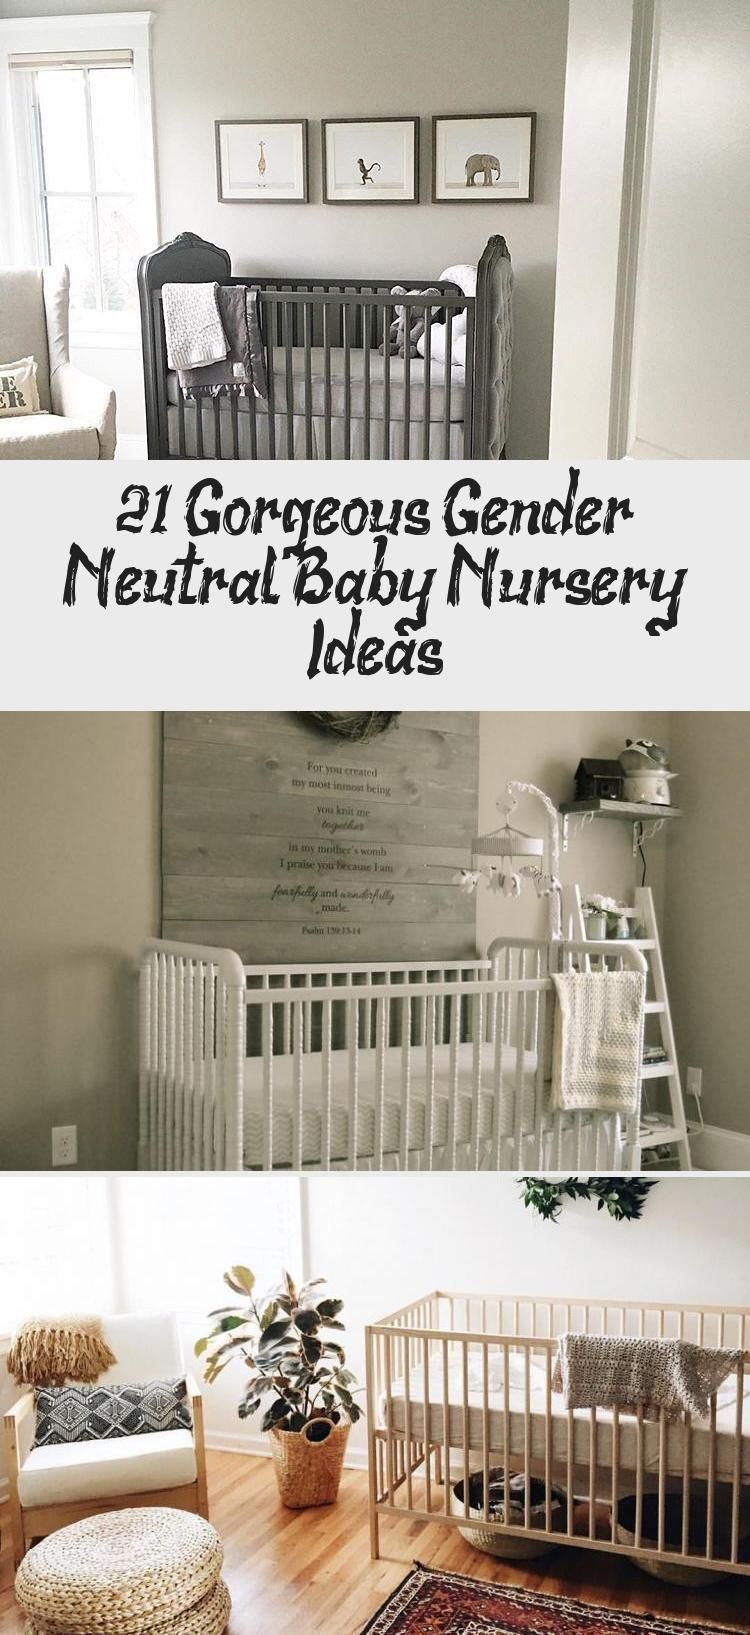 Photo of Unisex nursery Gender Neutral Nursery Unisex Nurseries Gender Neutral Nursery – Beautiful Gender-Neutral Nursery Pictures & Ideas – Beautiful Gender-Neutral Nursery Pictures & Ideas – Beautiful Gender-Neutral Nursery Pictures & Ideas